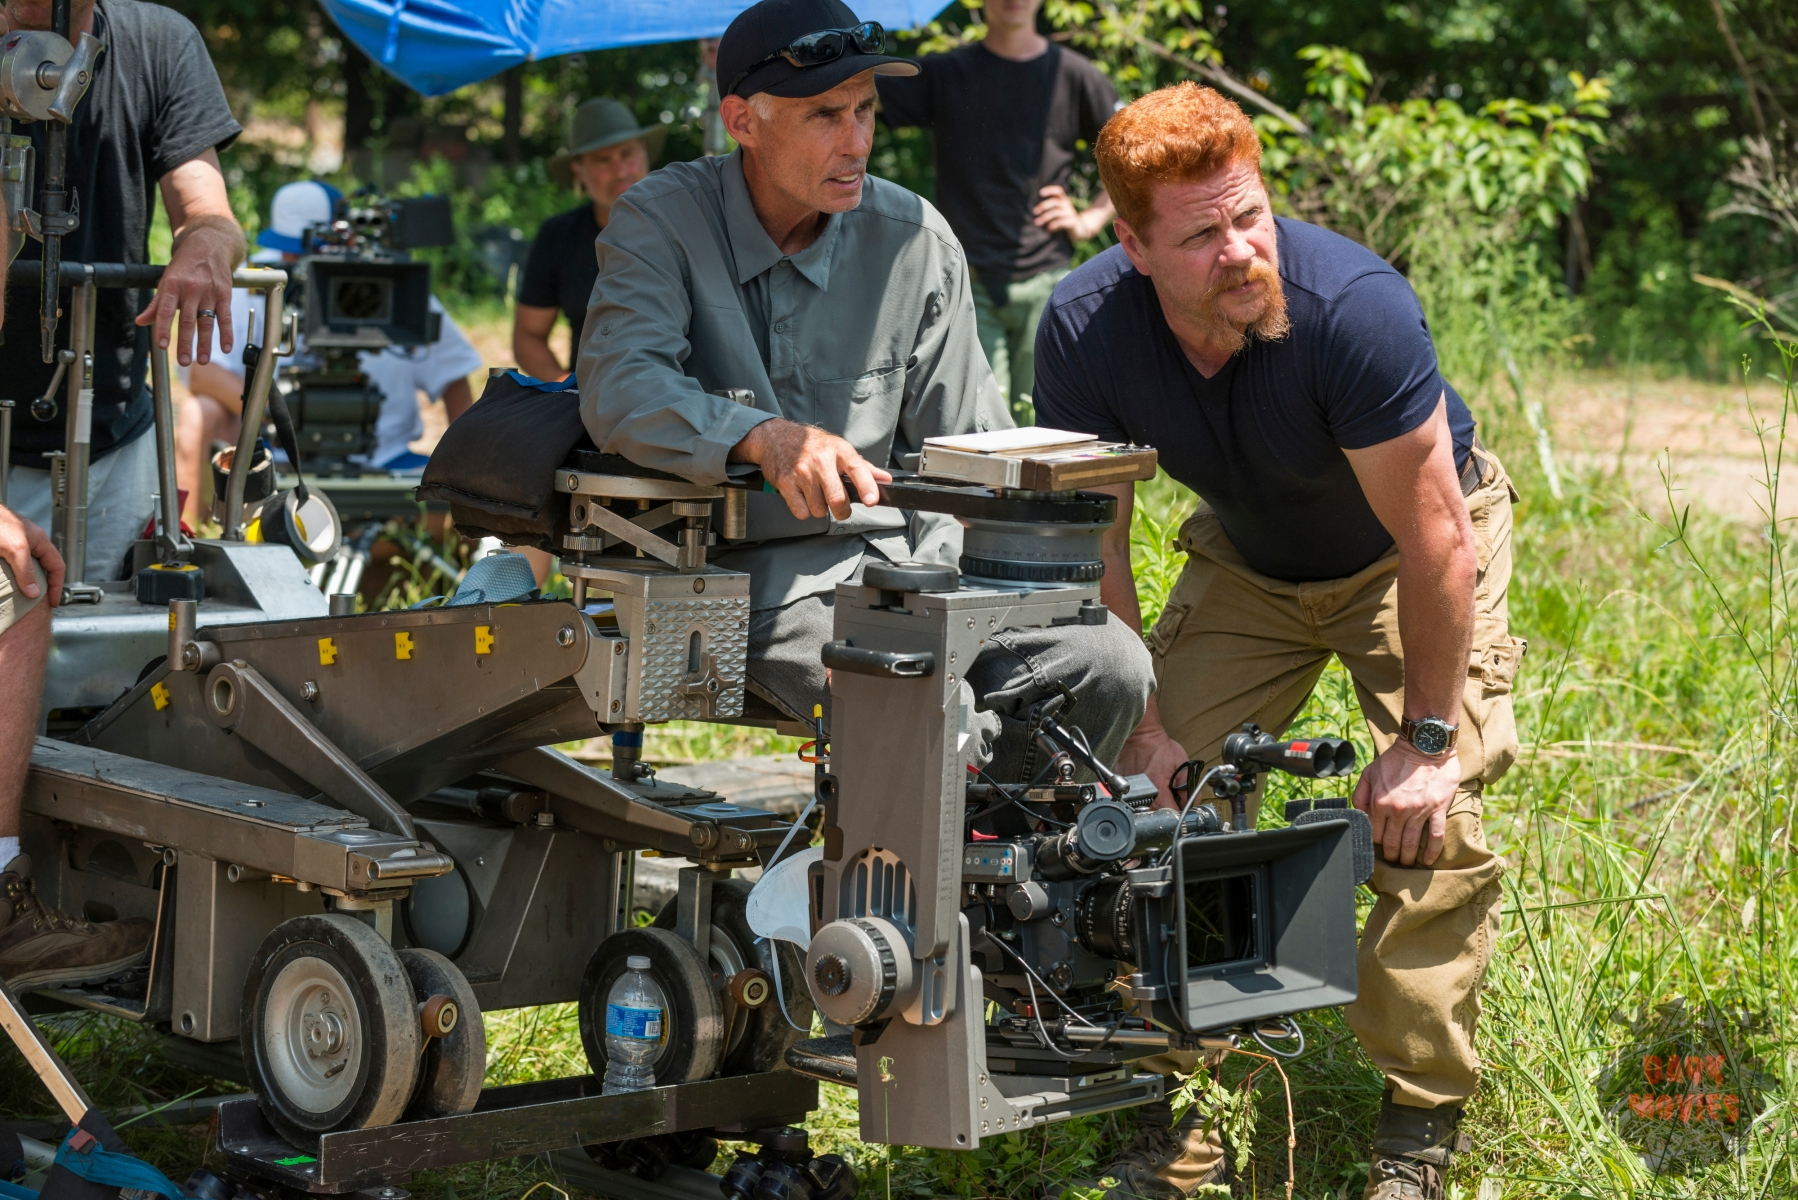 BTS, Michael Cudlitz as Sgt. Abraham Ford, Director of Photography Stephen Campbell - The Walking Dead _ Season 7, Episode 2 - Photo Credit: Gene Page/AMC